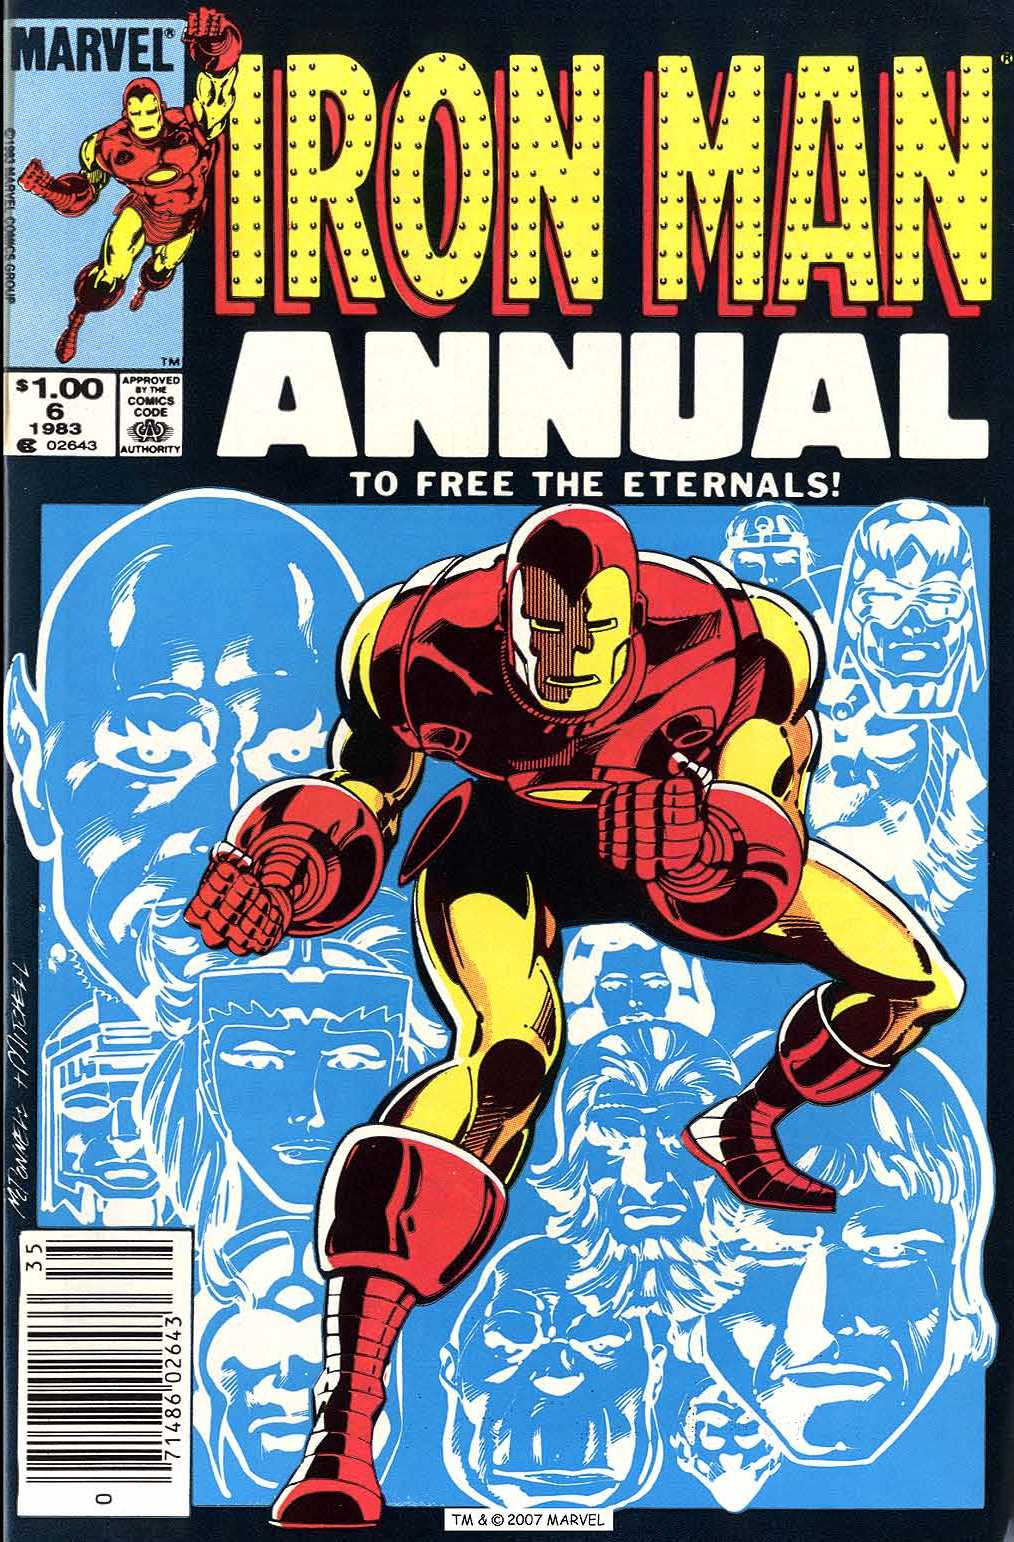 Iron Man Annual (1970) #6, cover penciled by Luke McDonnell & inked by Steve Mitchell.